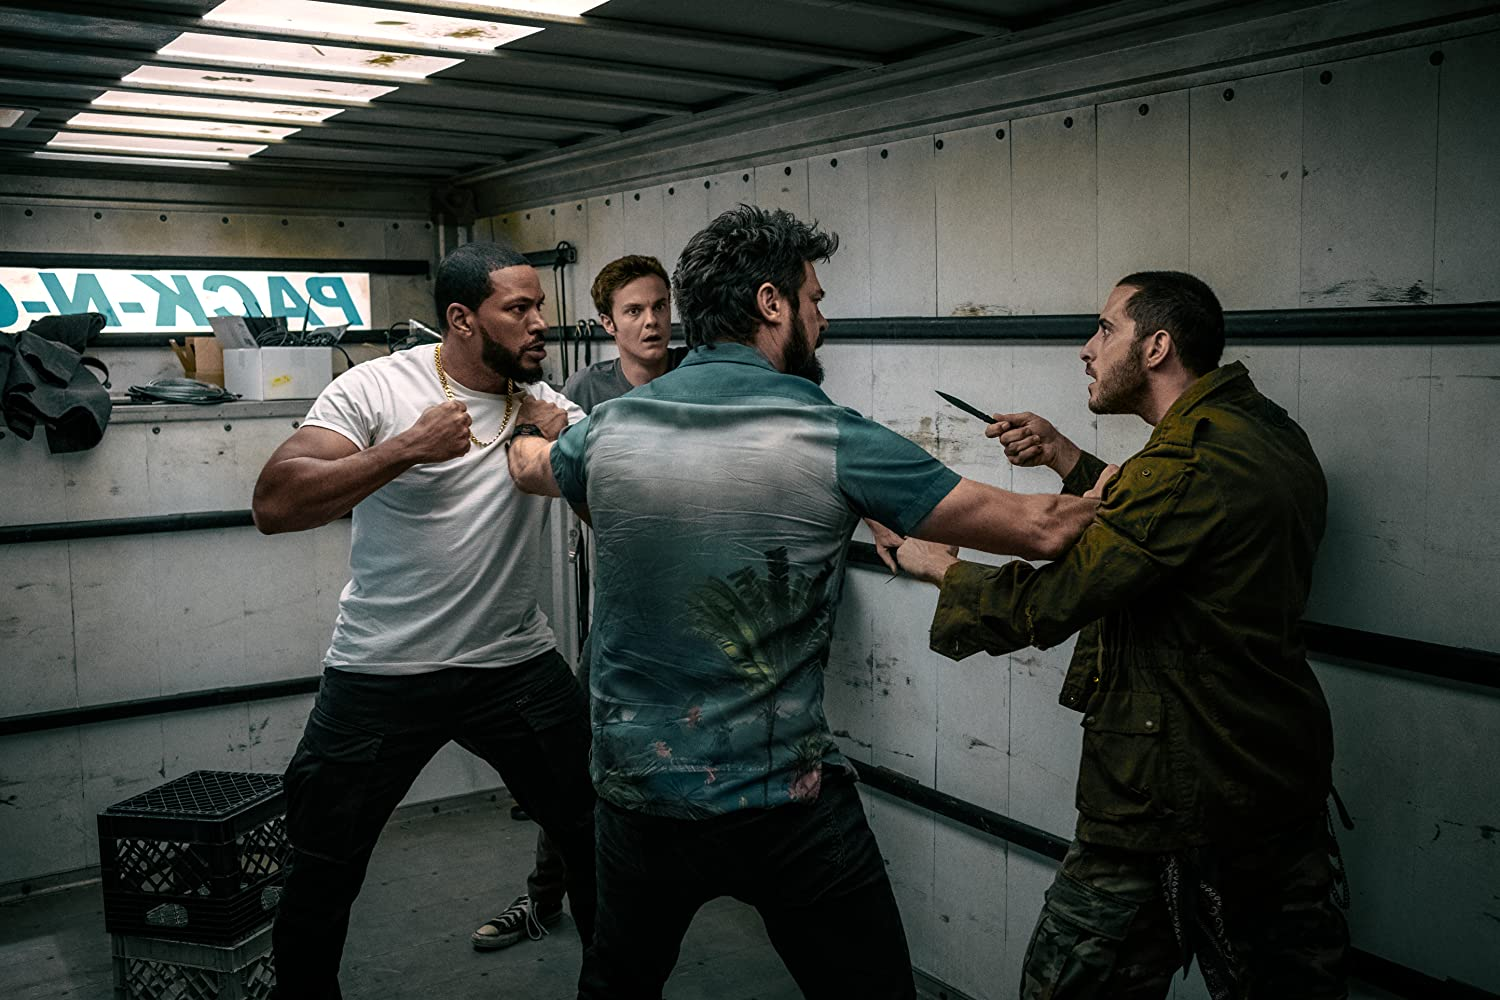 Laz Alonso, Karl Urban, Jack Quaid, and Tomer Capon in The Boys (2019)